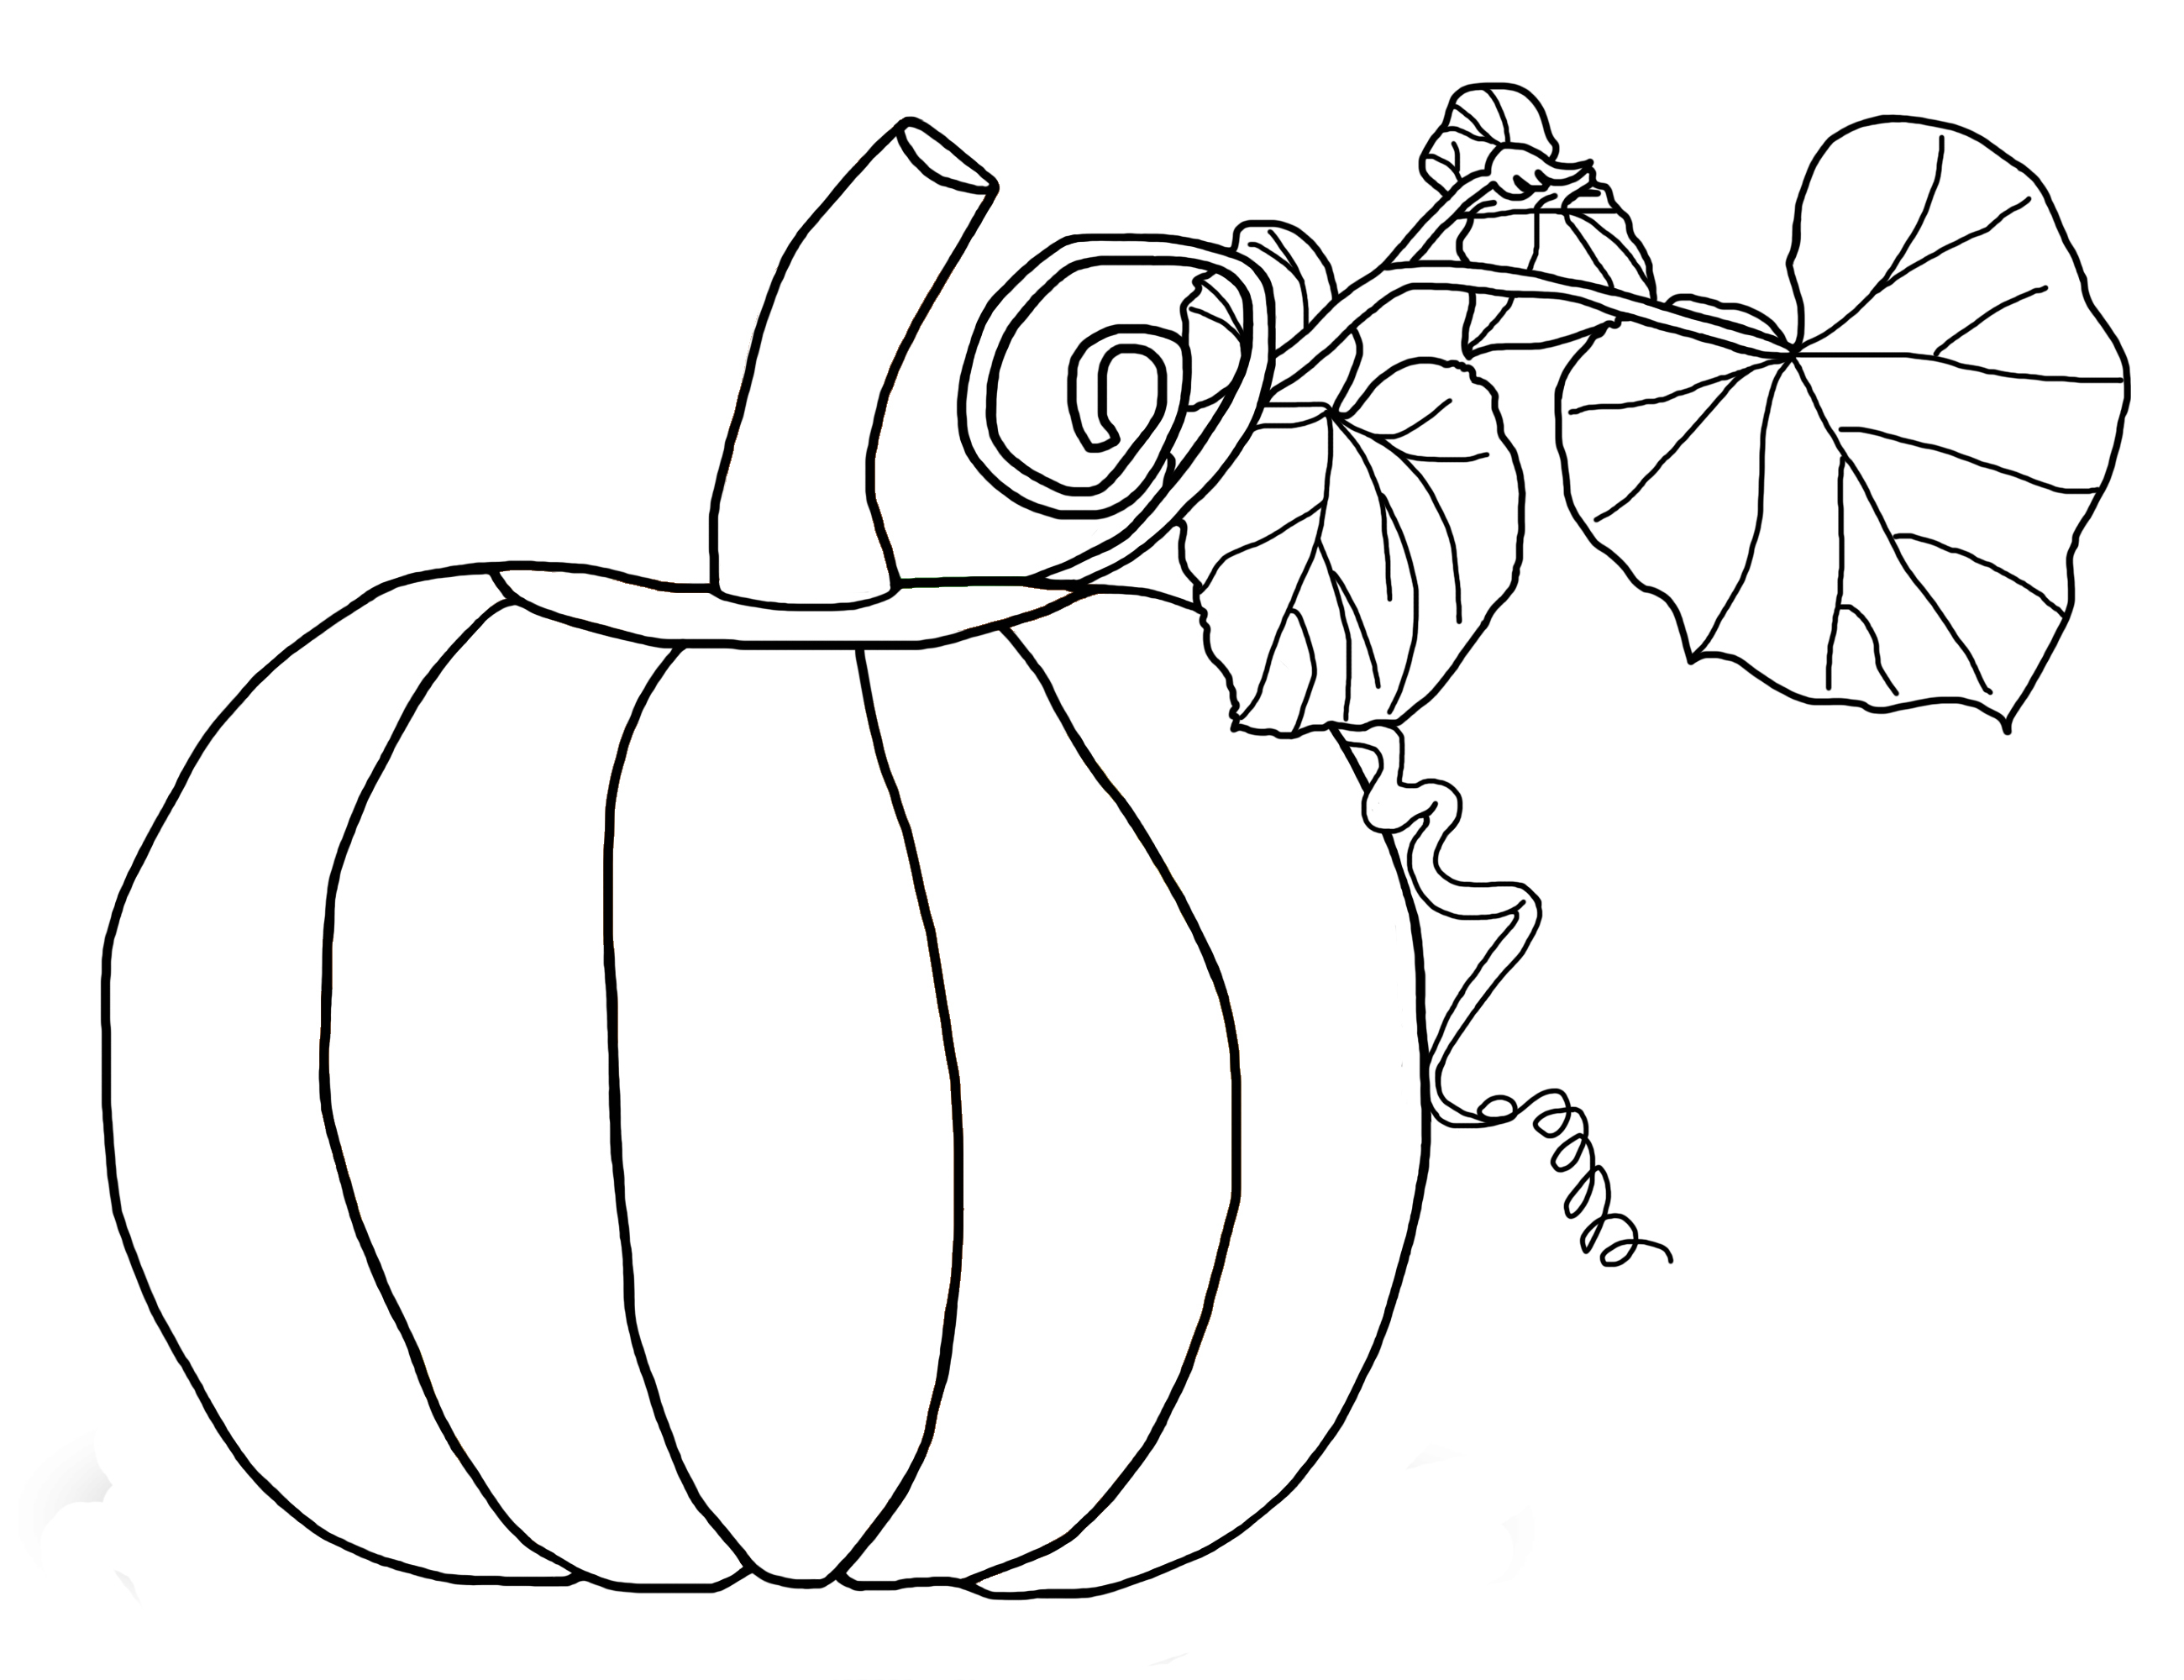 Clip Art Coloring Pages Of A Pumpkin free printable pumpkin coloring pages for kids page pumpkin